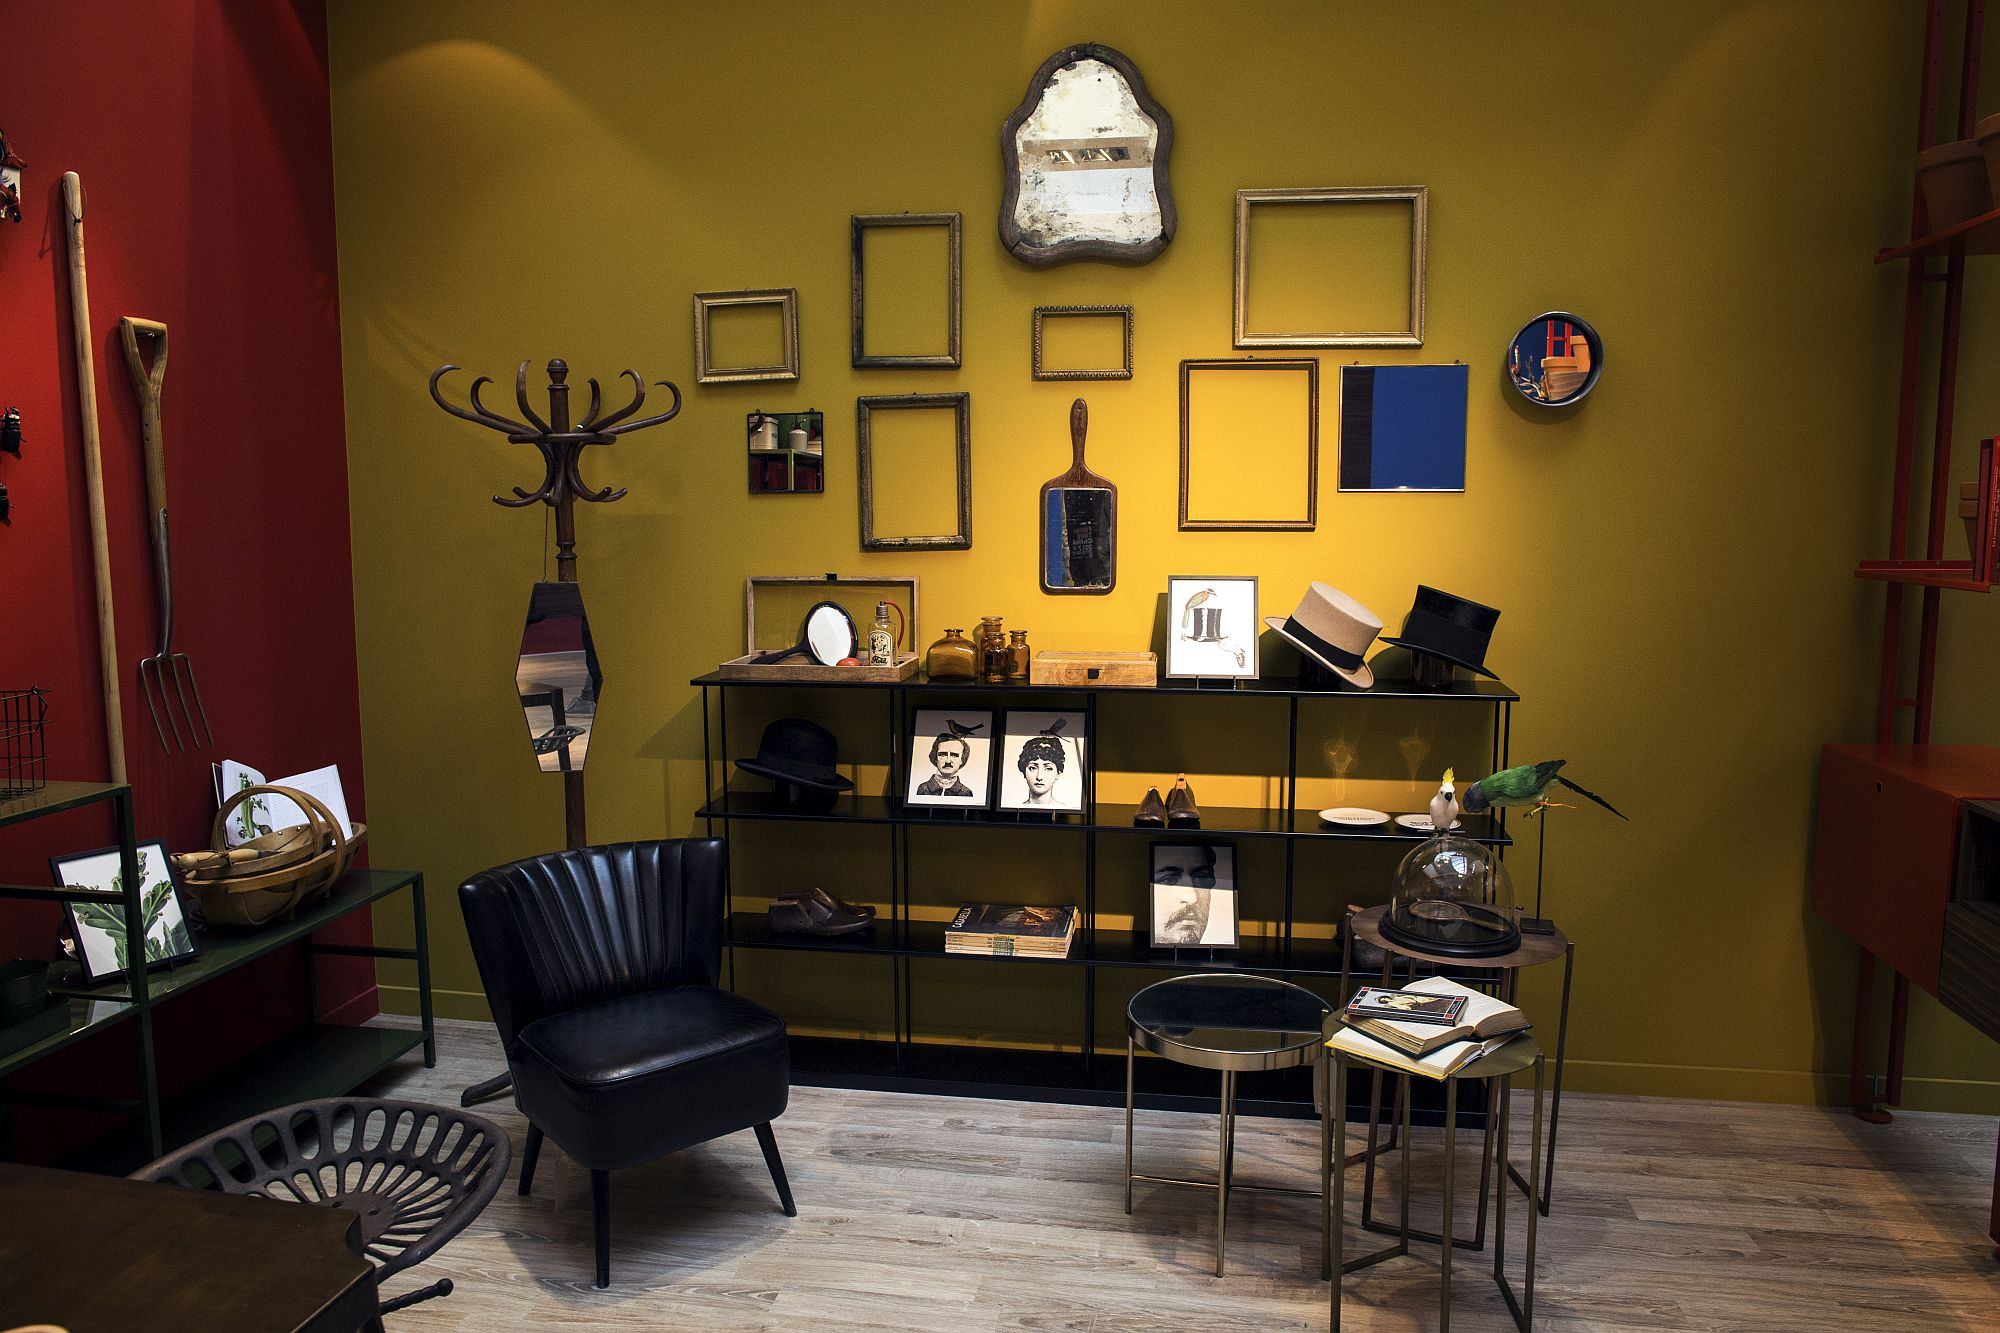 Empty-picture-frames-can-also-be-used-to-fashion-a-striking-display